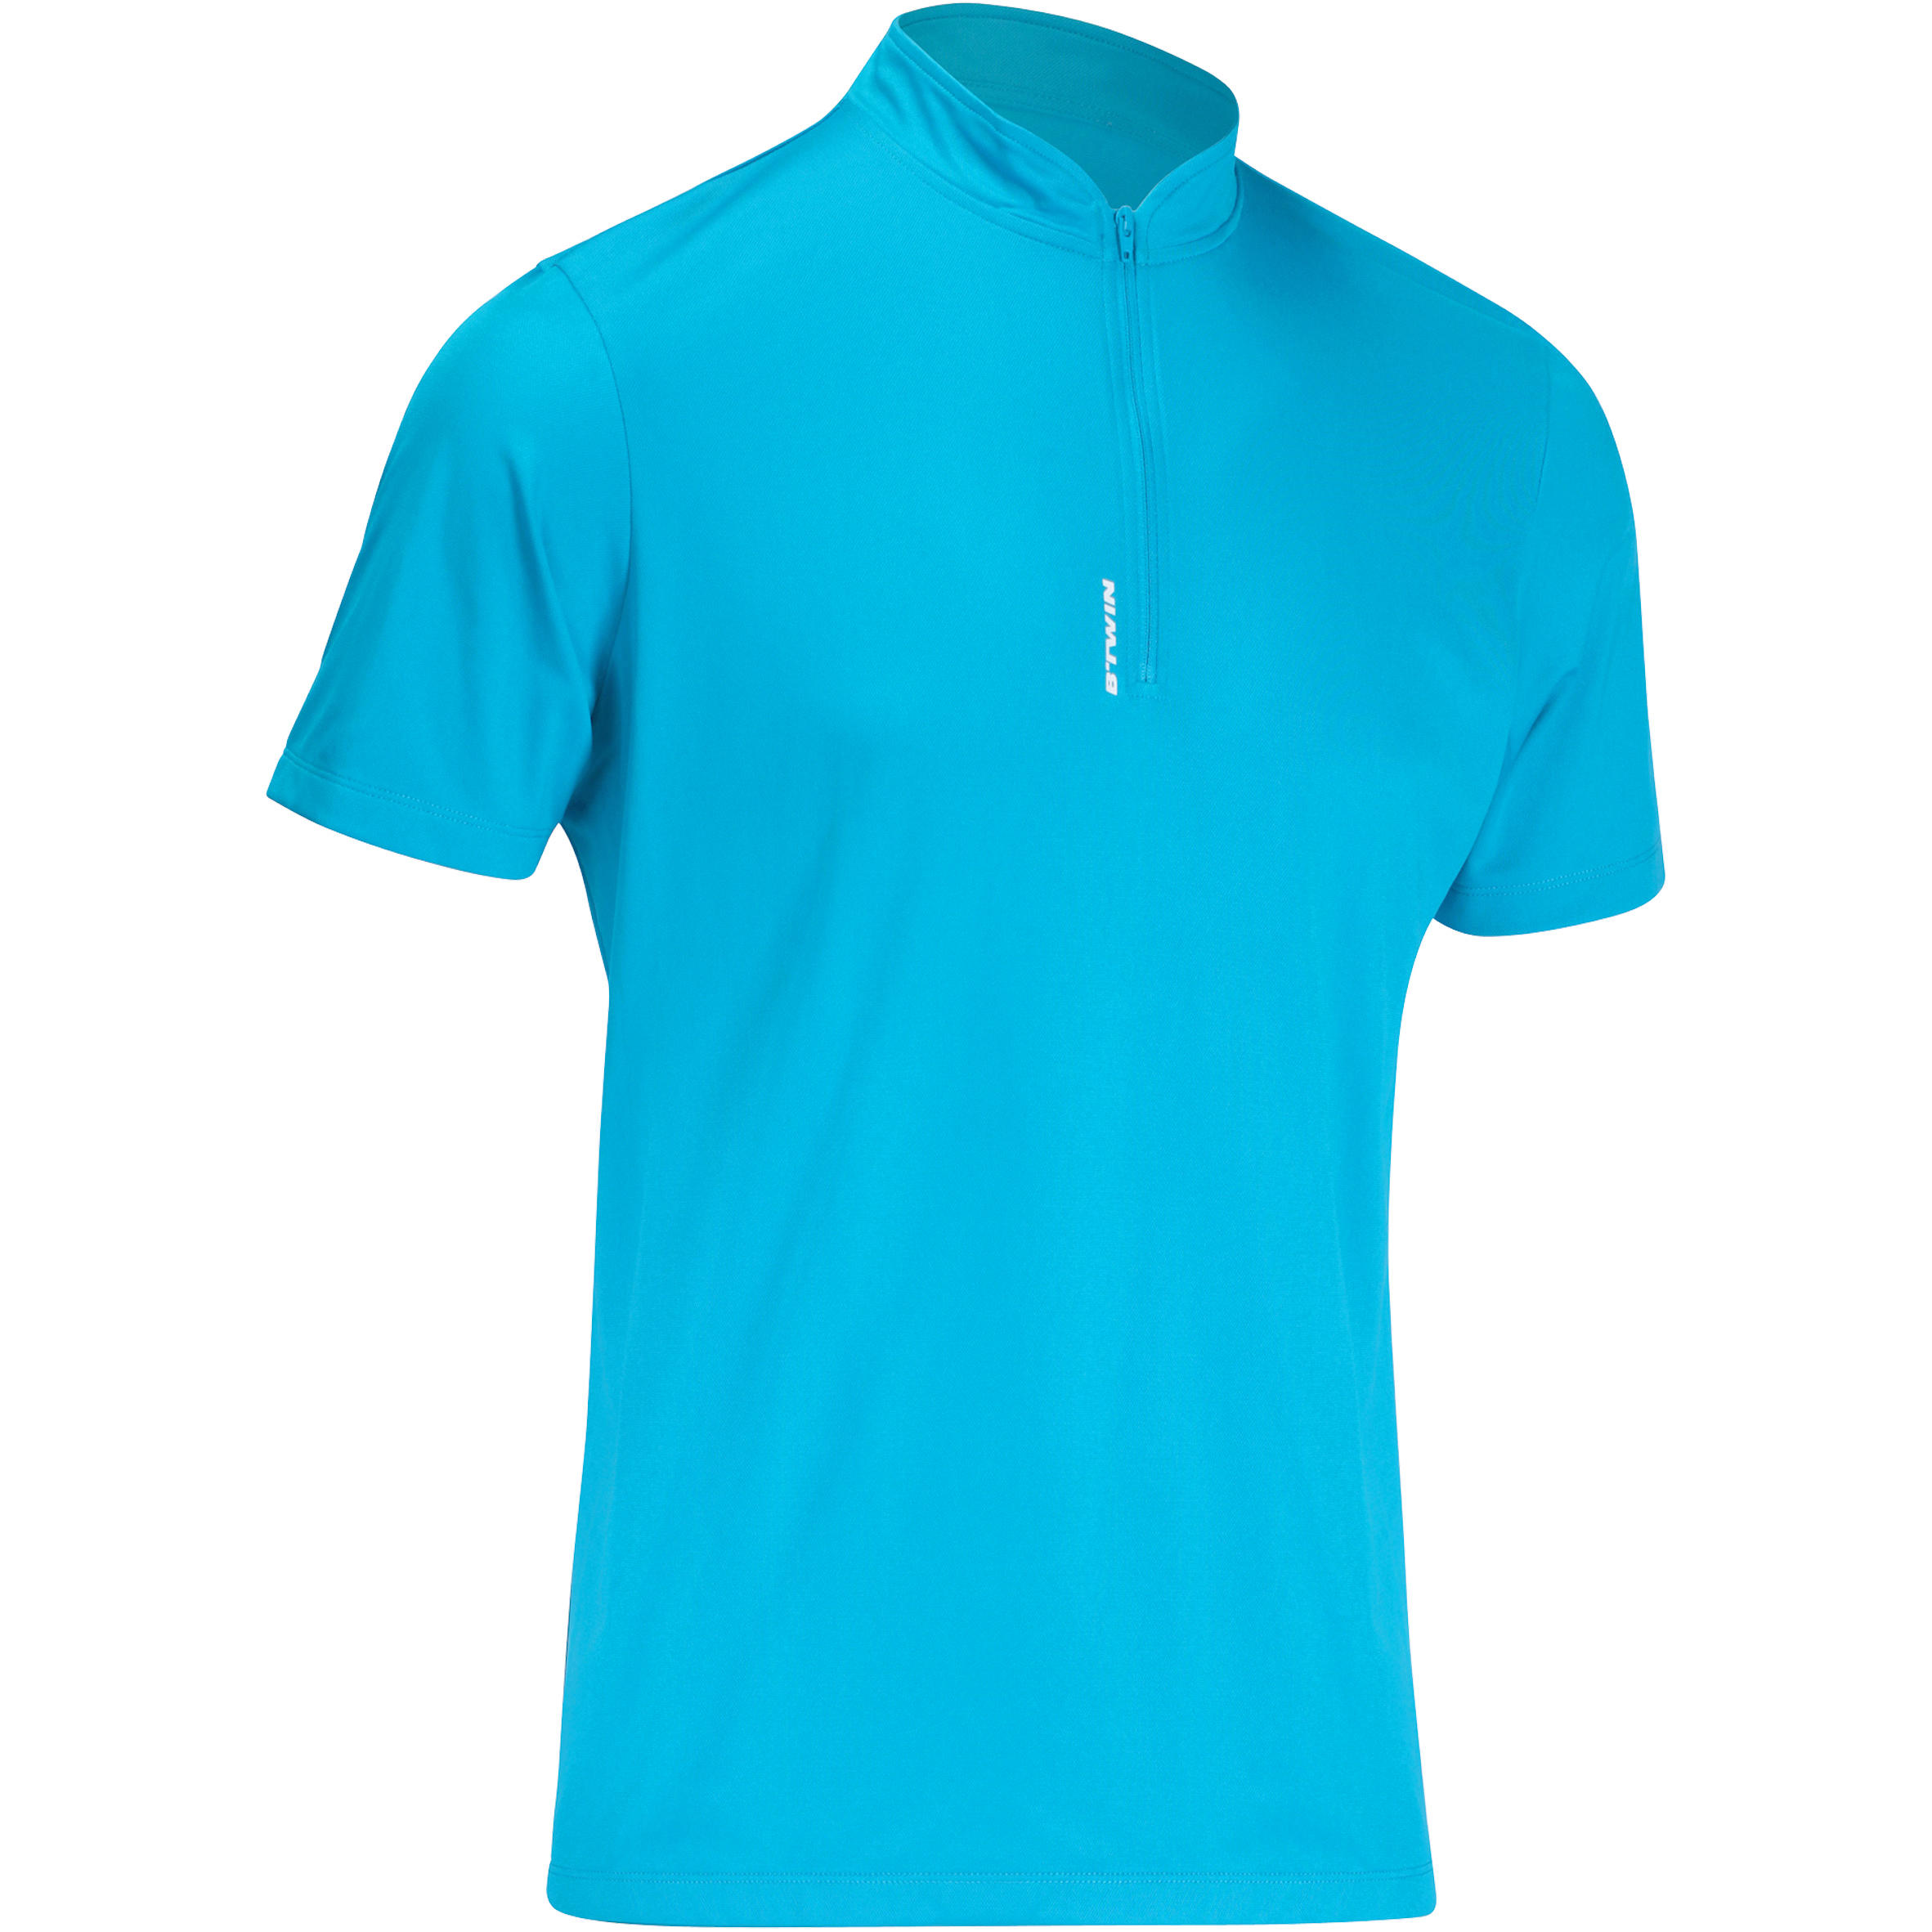 Road Cycling 100 Short-Sleeved Cycling Jersey - Blue